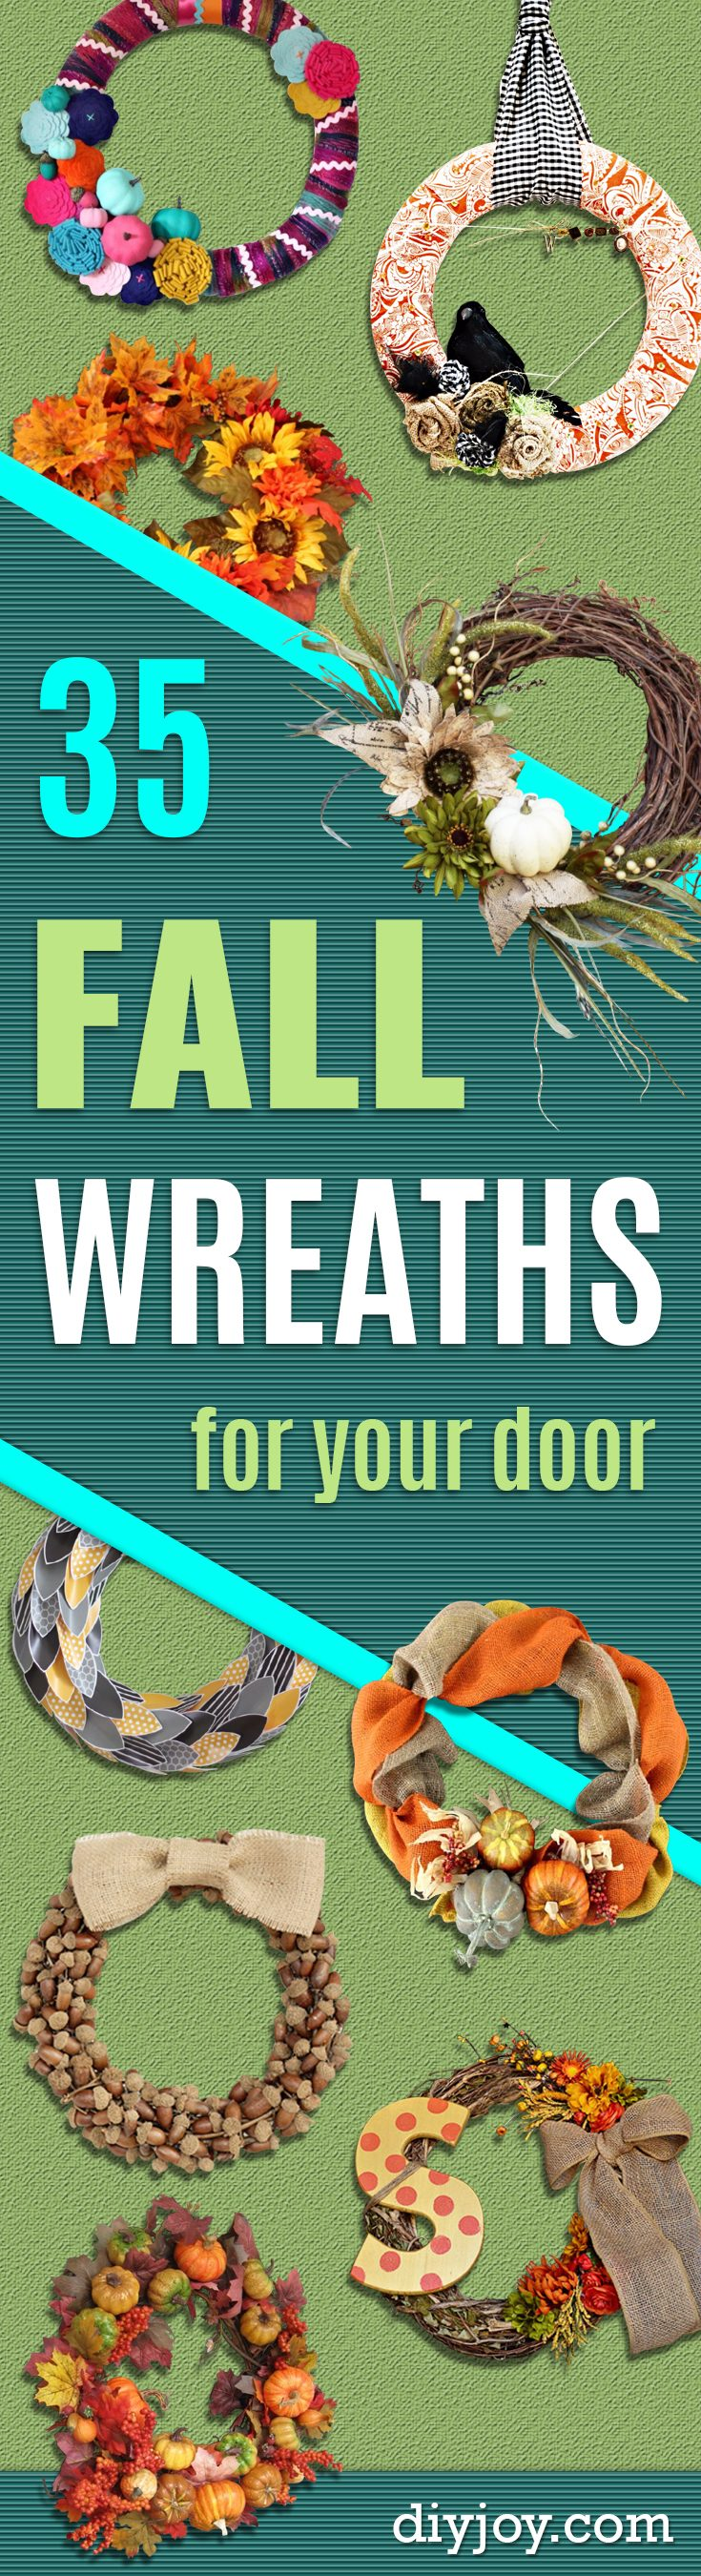 DIY Fall Wreaths for Your Door - Fall Wreaths For Front Door, Fall Wreaths Ideas To Try, Easy DIY Fall Wreaths, Brilliant Fall Wreath DIY, Porch Decor, Cool Ideas For Fall, Fall Projects